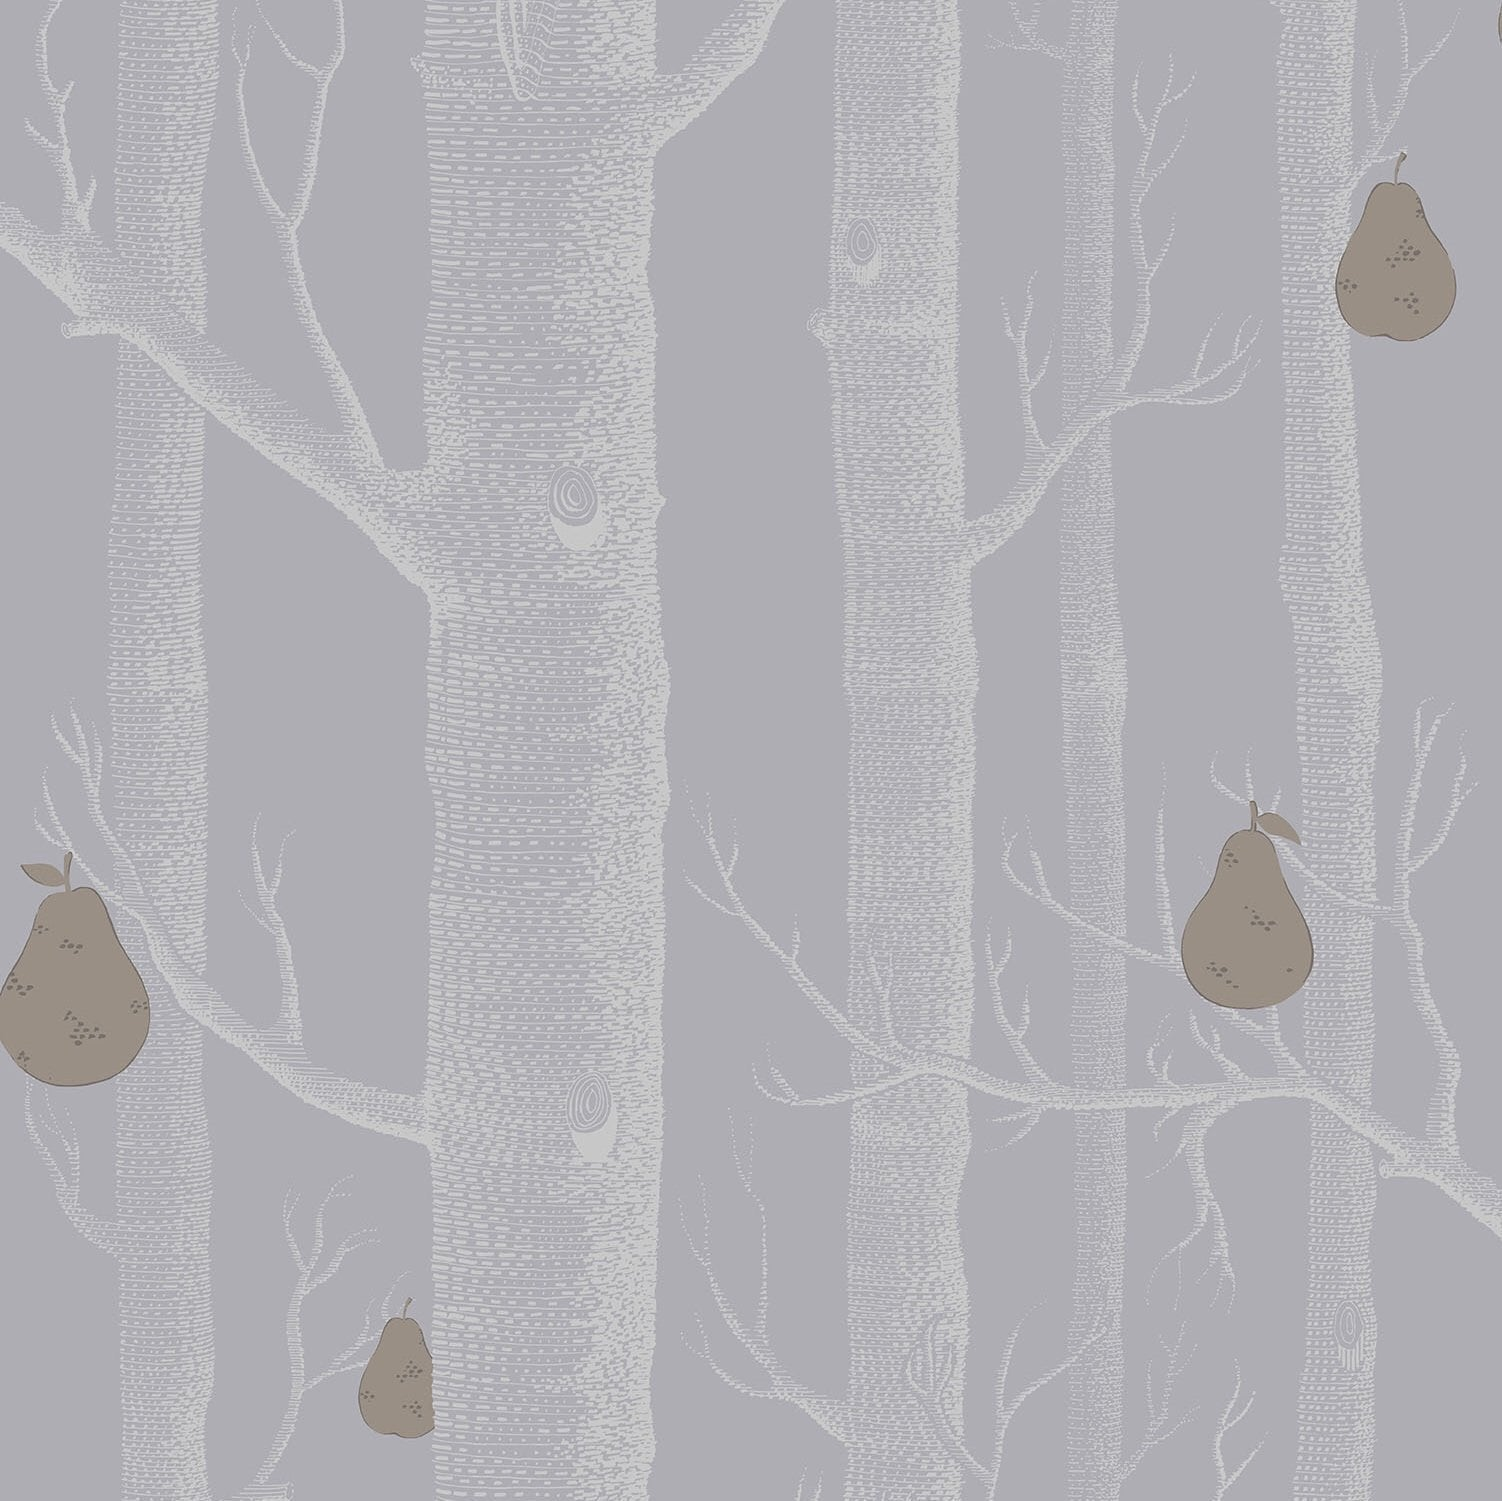 Cole And Son Woods woods & pears contemporary restyled 95/5030 wallpapercole & son